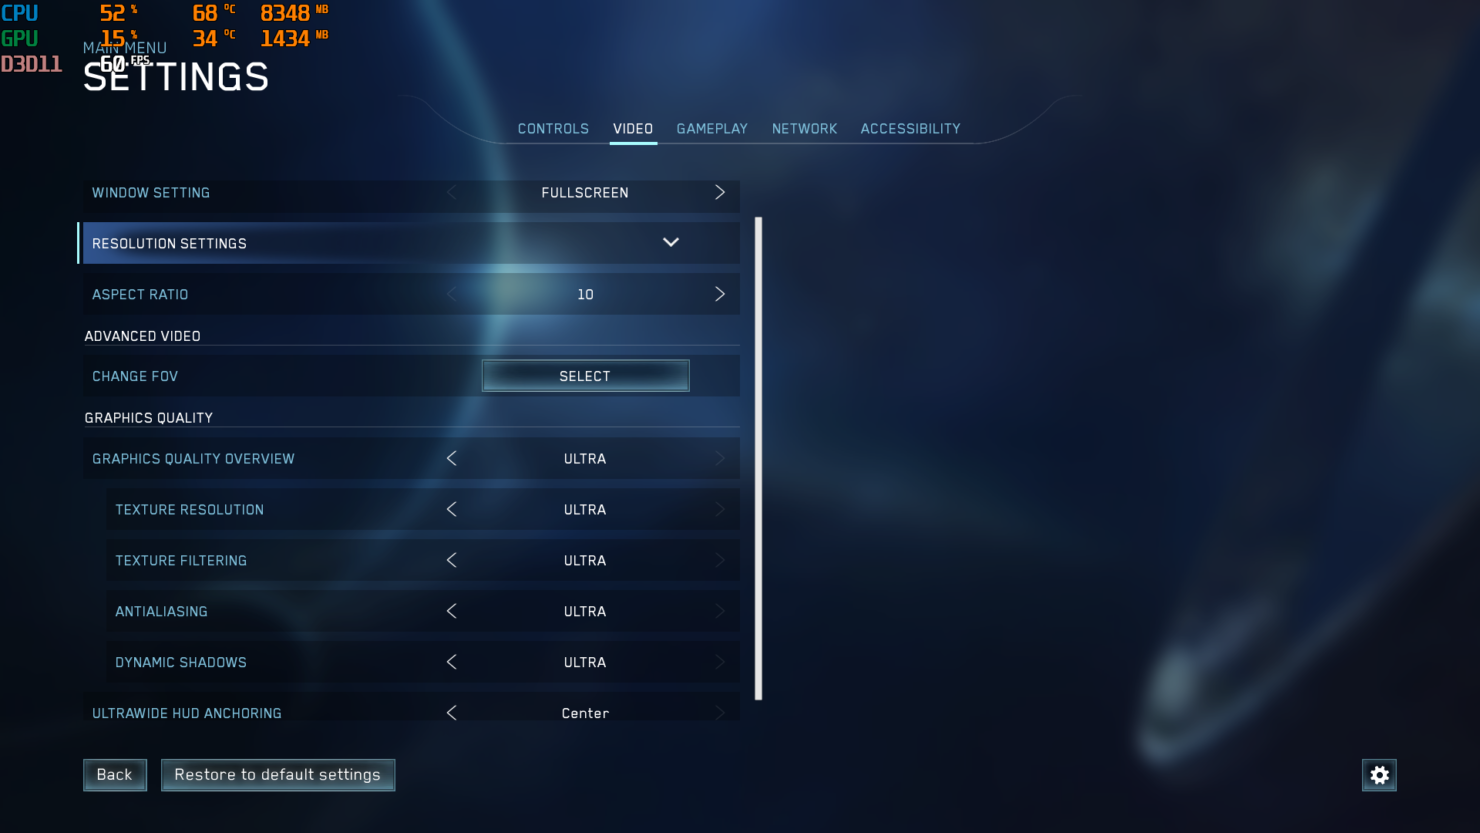 Halo: Master Chief Collection PC graphics settings detailed